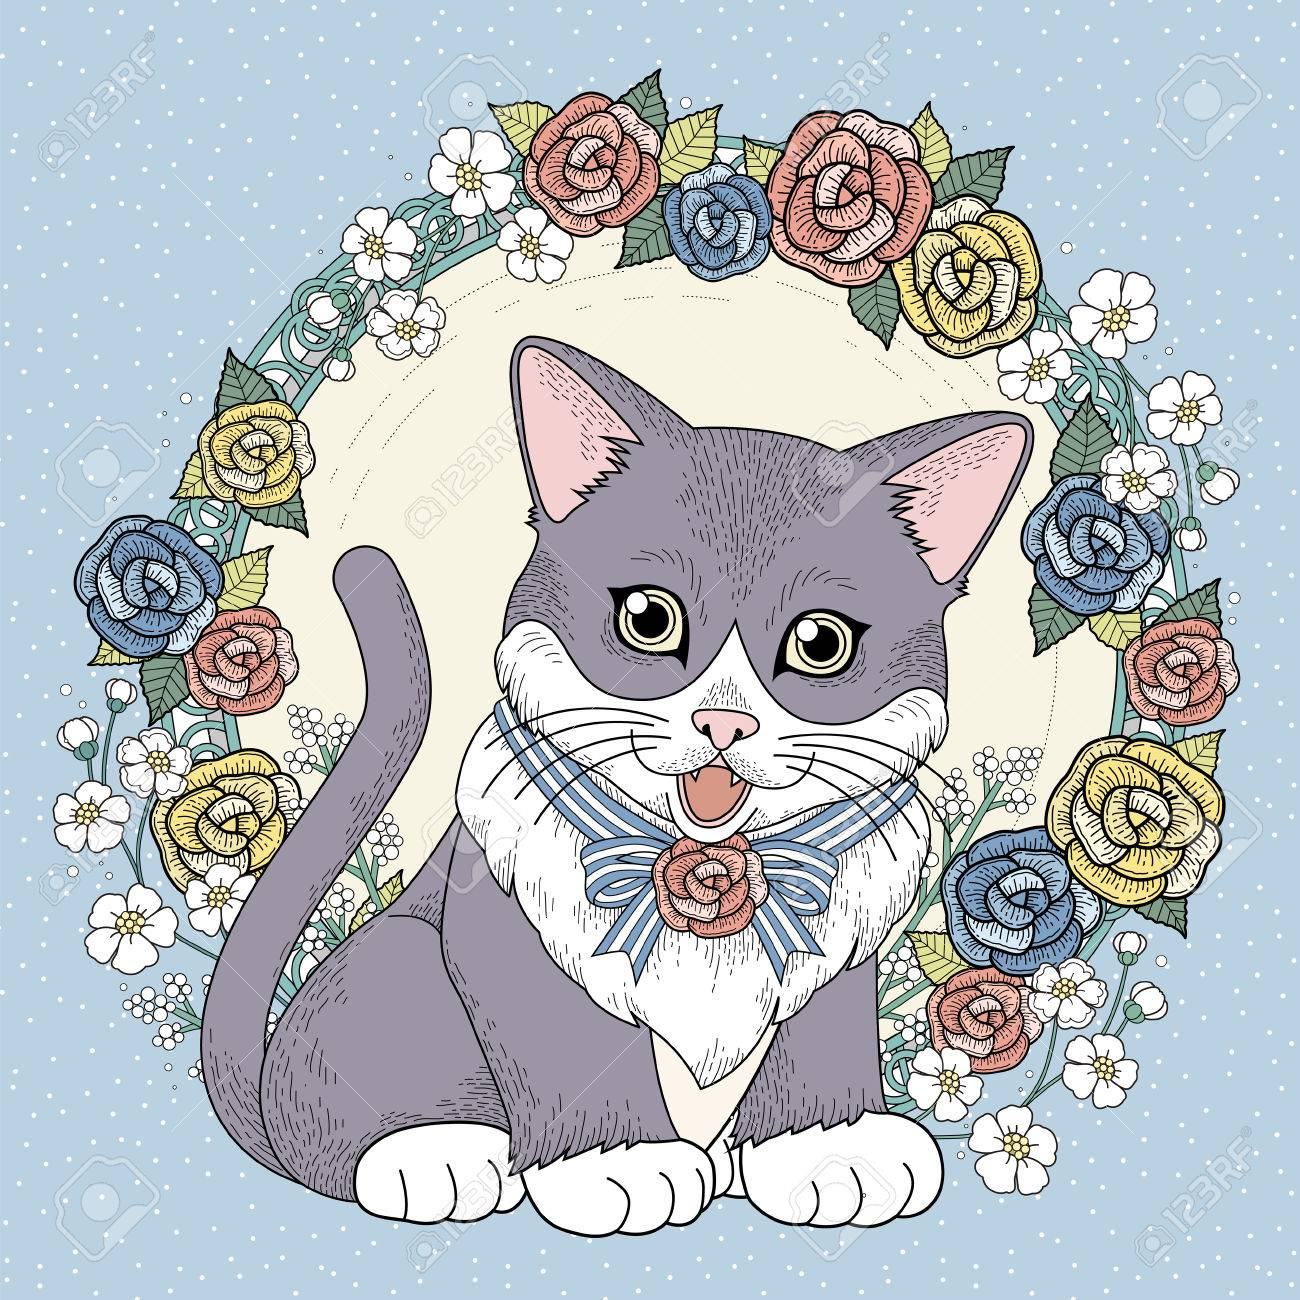 Adorable Kitty Coloring Page With Floral Wreath In Exquisite Line Stock Vector